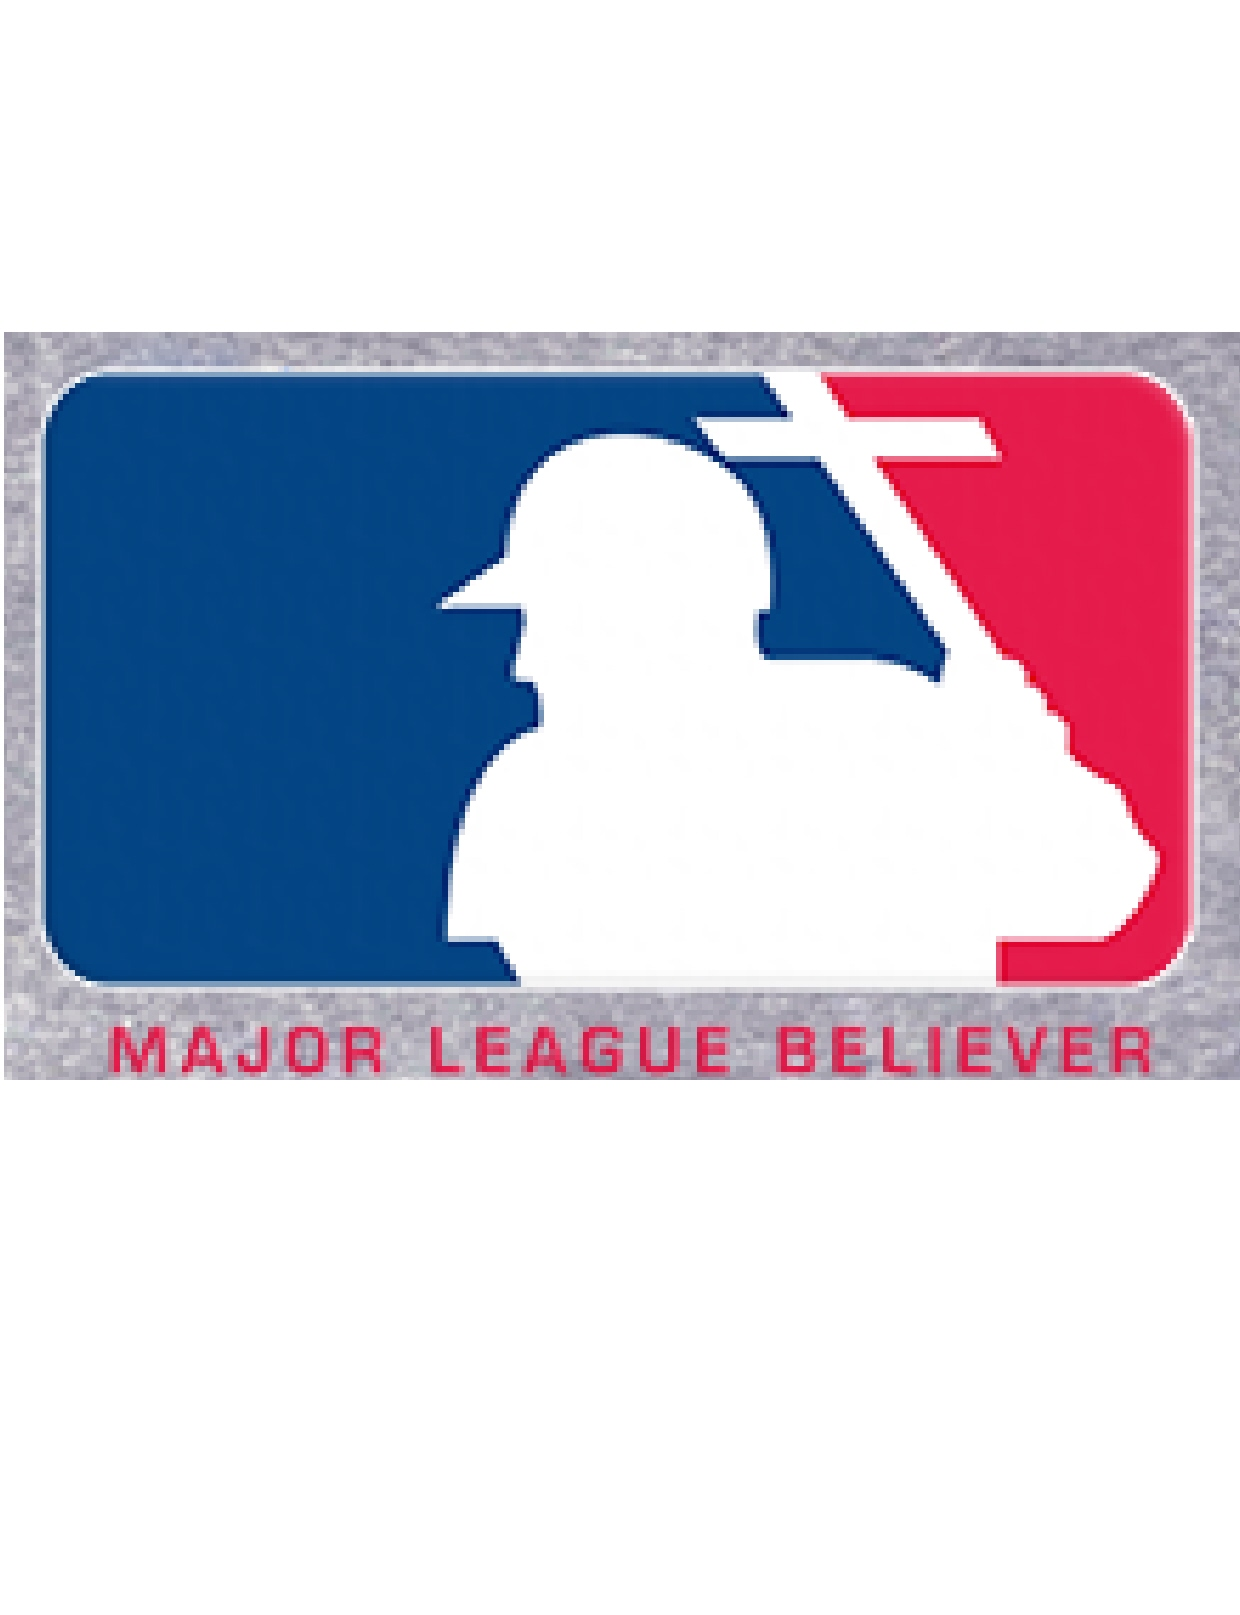 Major League Believer $35